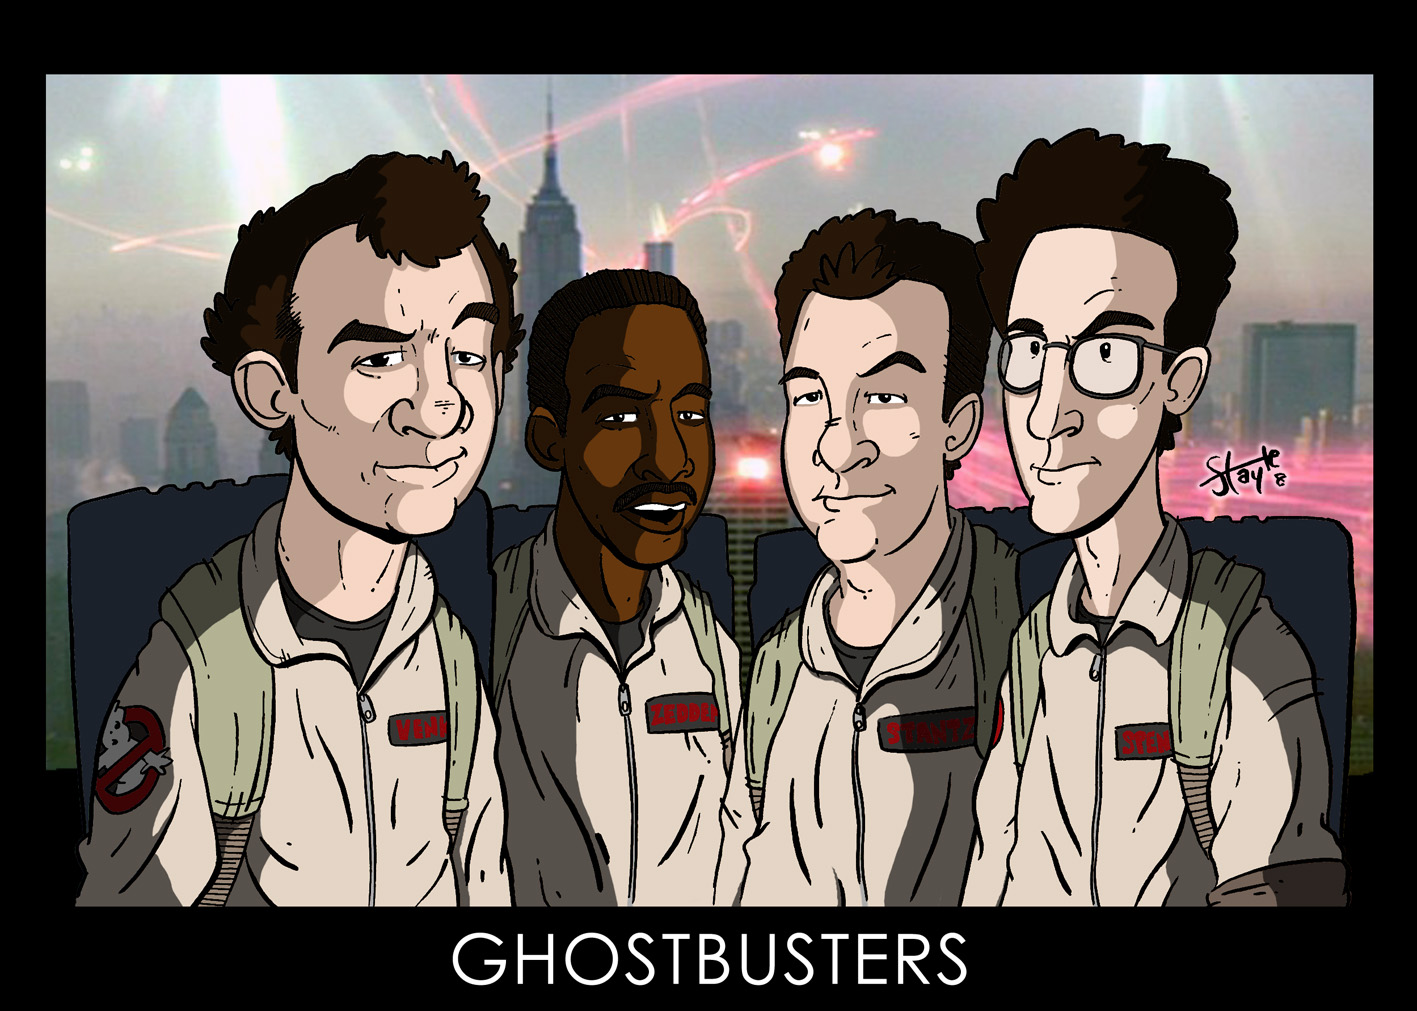 ghostbusters_illustration